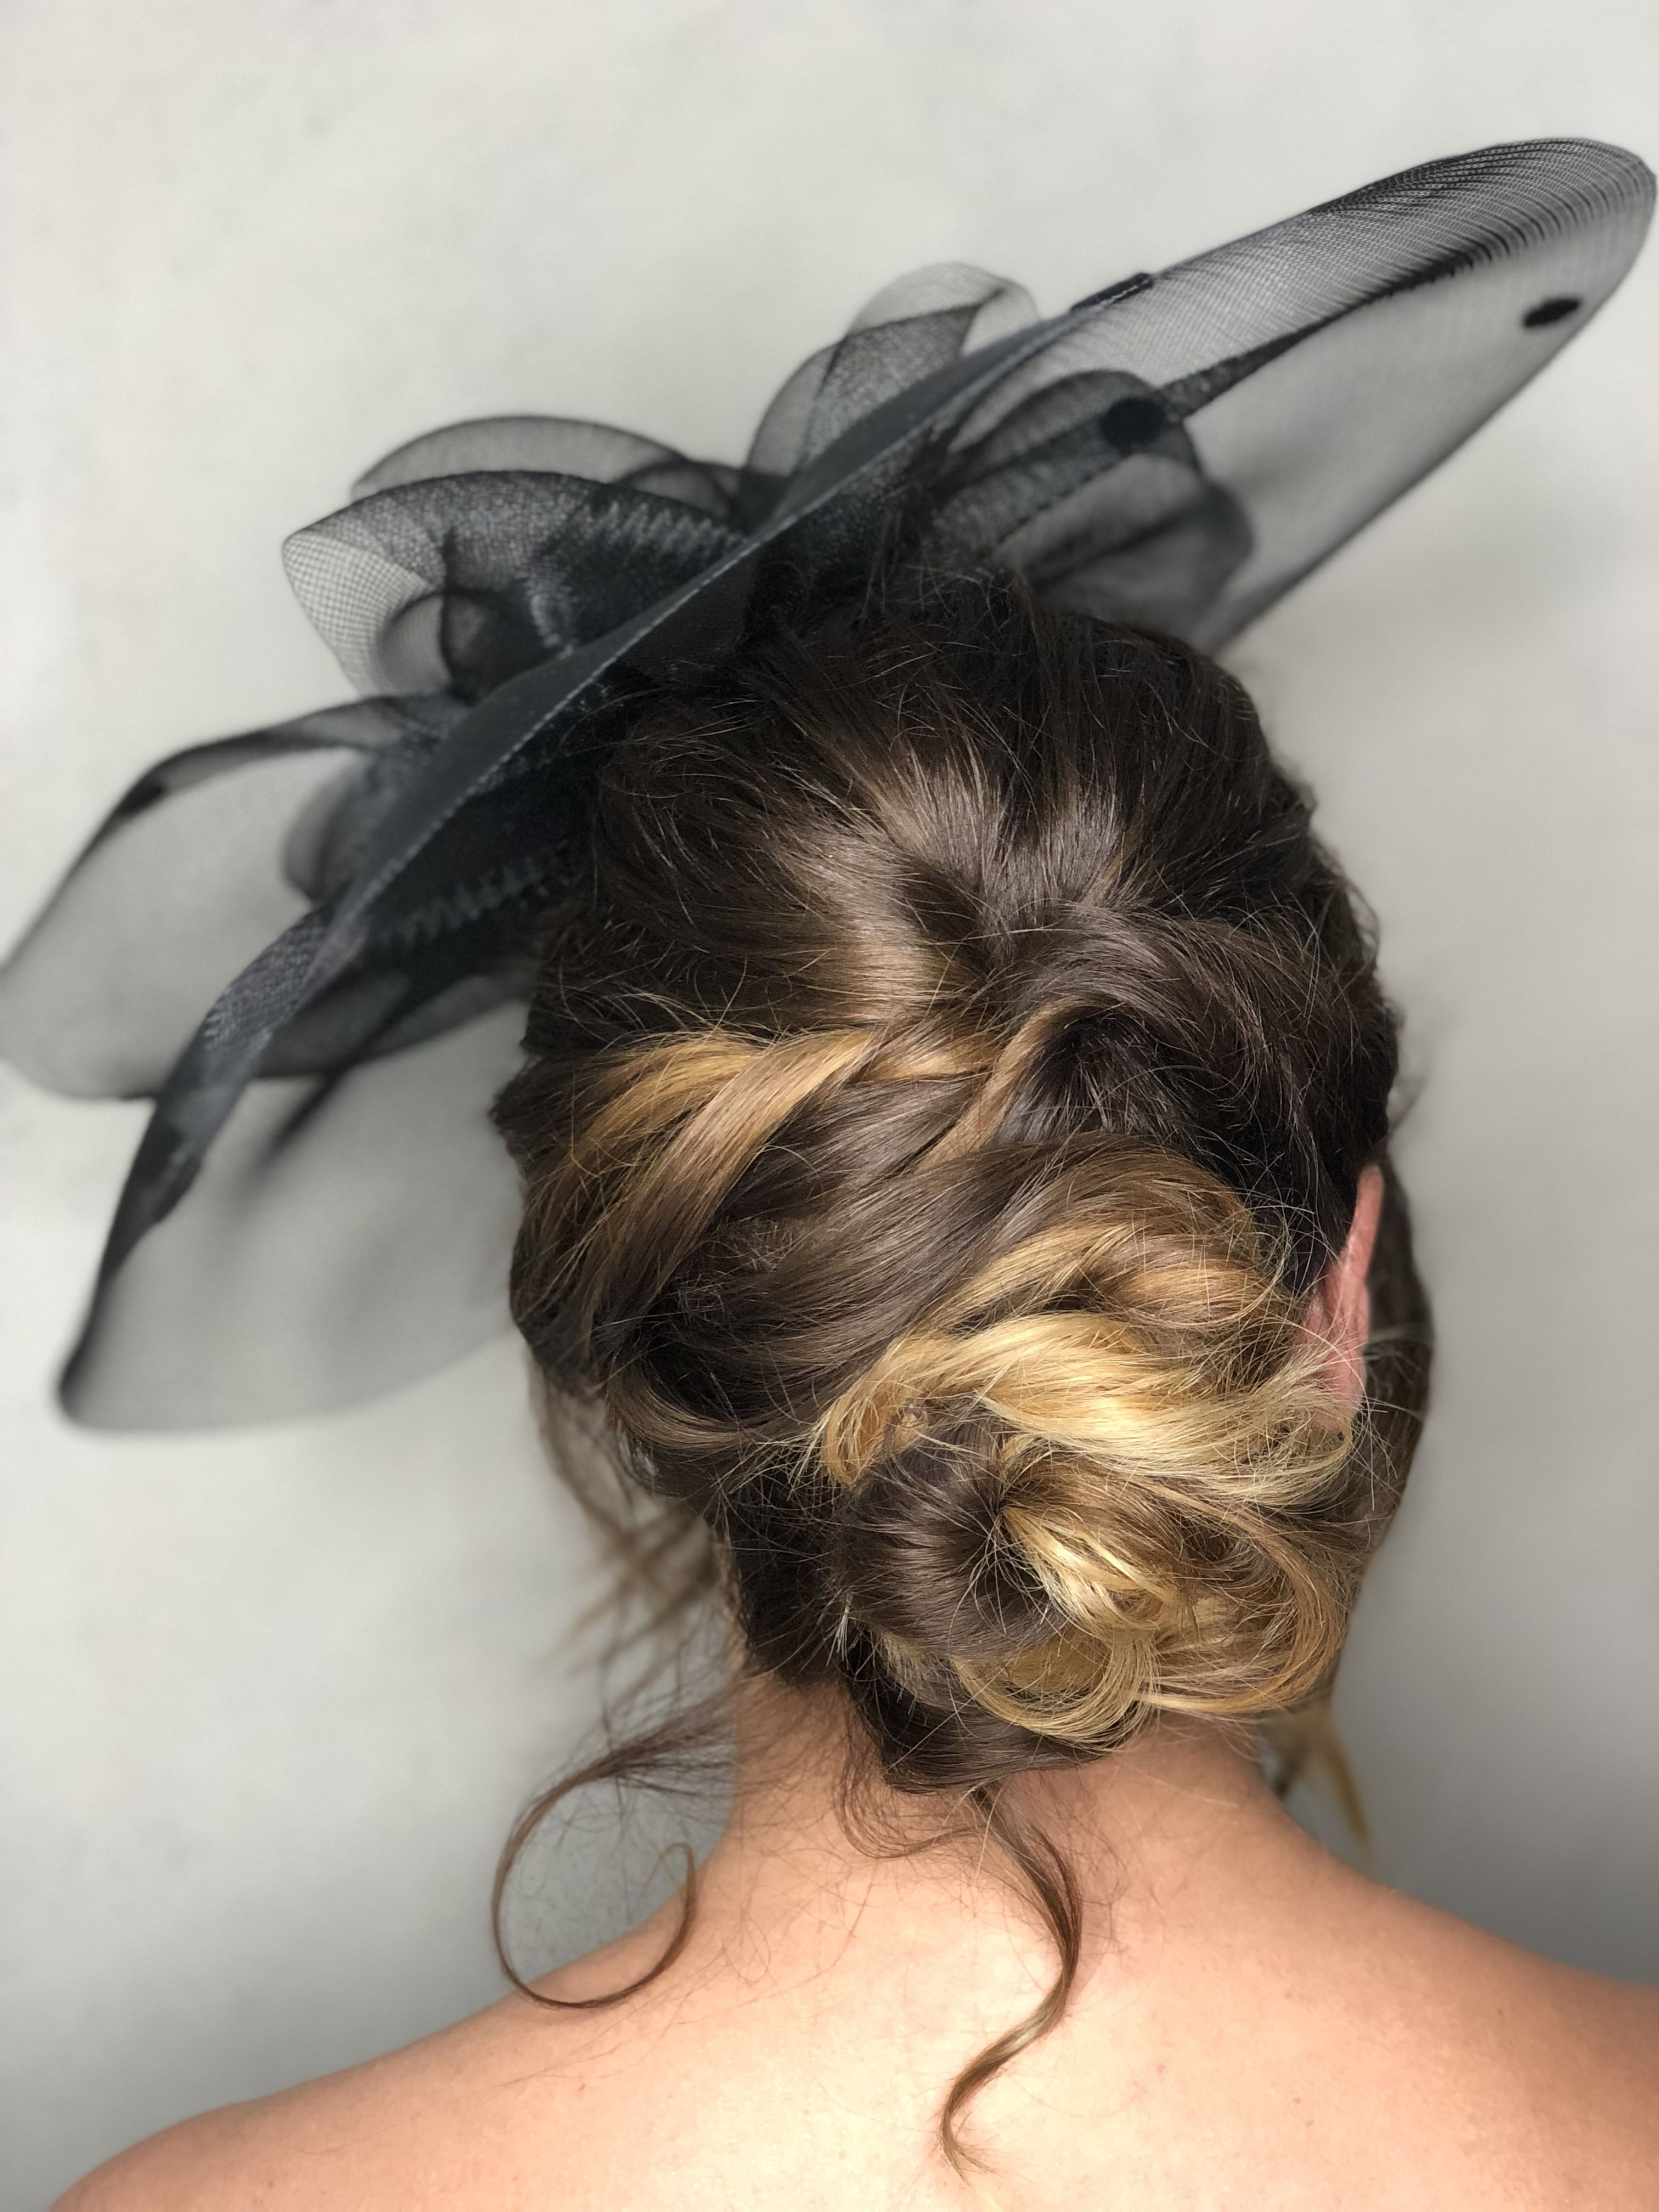 Boho hair up. Low side bun. Textured up do. Hair by me. Wedding guest. Races. #lowsidebuns Boho hair up. Low side bun. Textured up do. Hair by me. Wedding guest. Races. #lowsidebuns Boho hair up. Low side bun. Textured up do. Hair by me. Wedding guest. Races. #lowsidebuns Boho hair up. Low side bun. Textured up do. Hair by me. Wedding guest. Races. #lowsidebuns